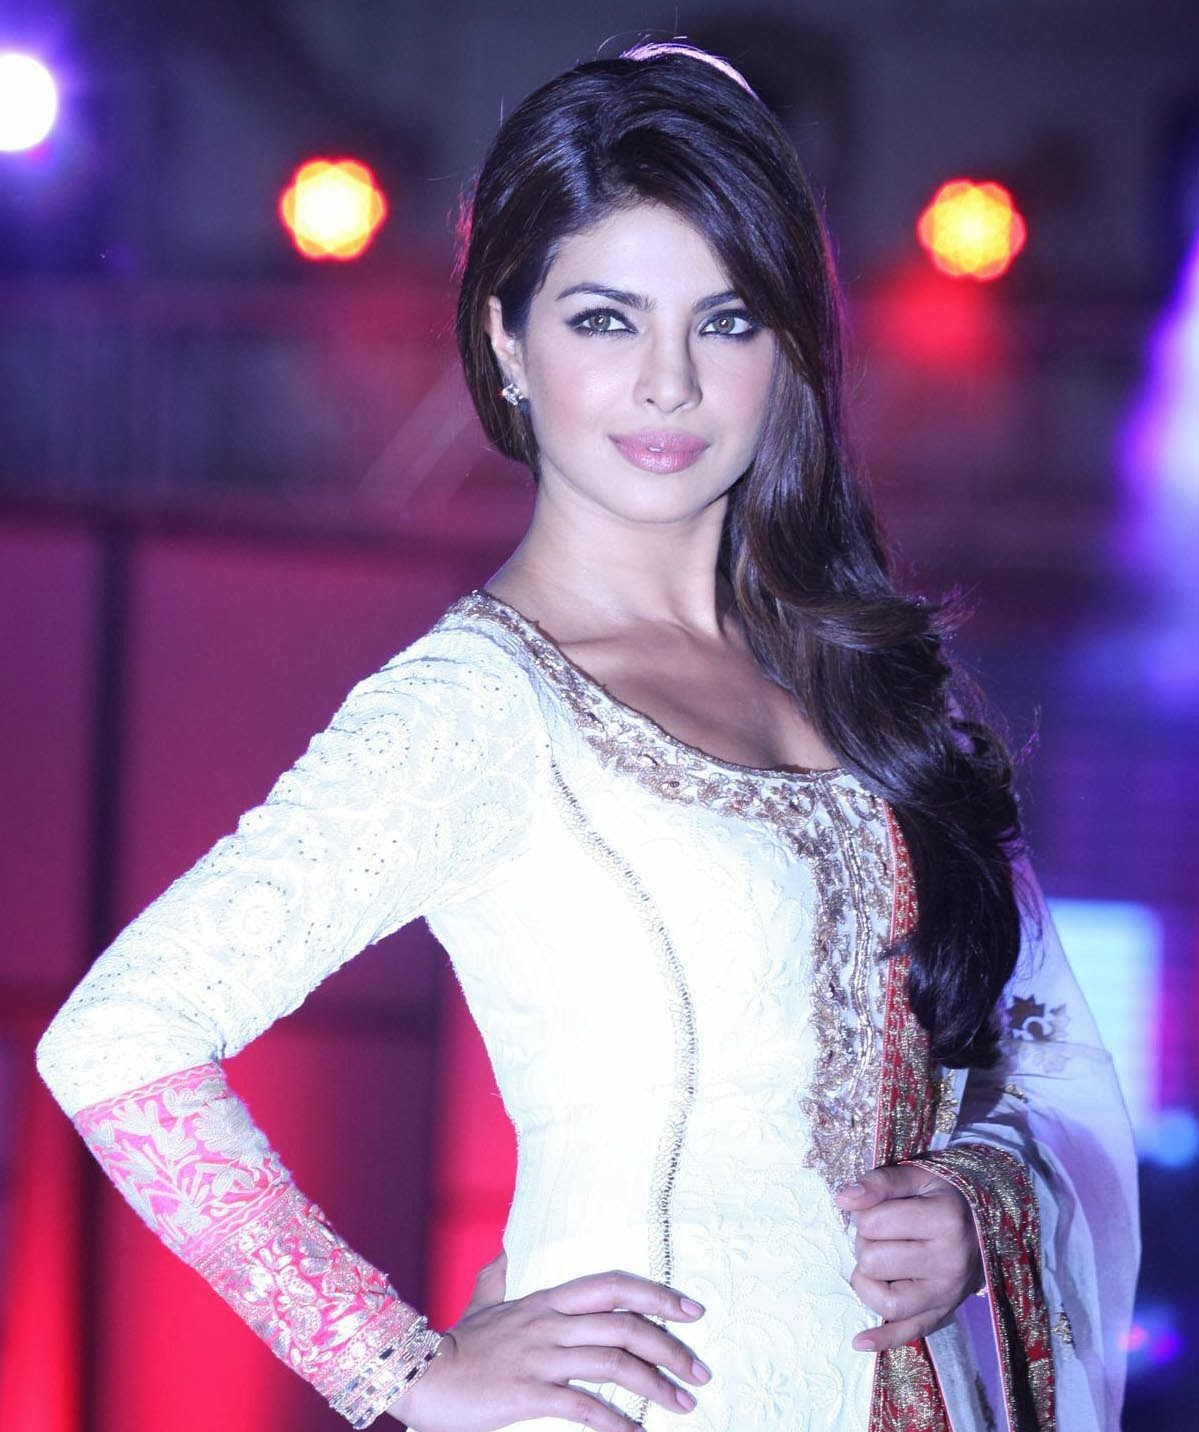 Priyanka Chopra - Latest News, Photos, Videos, Awards 79